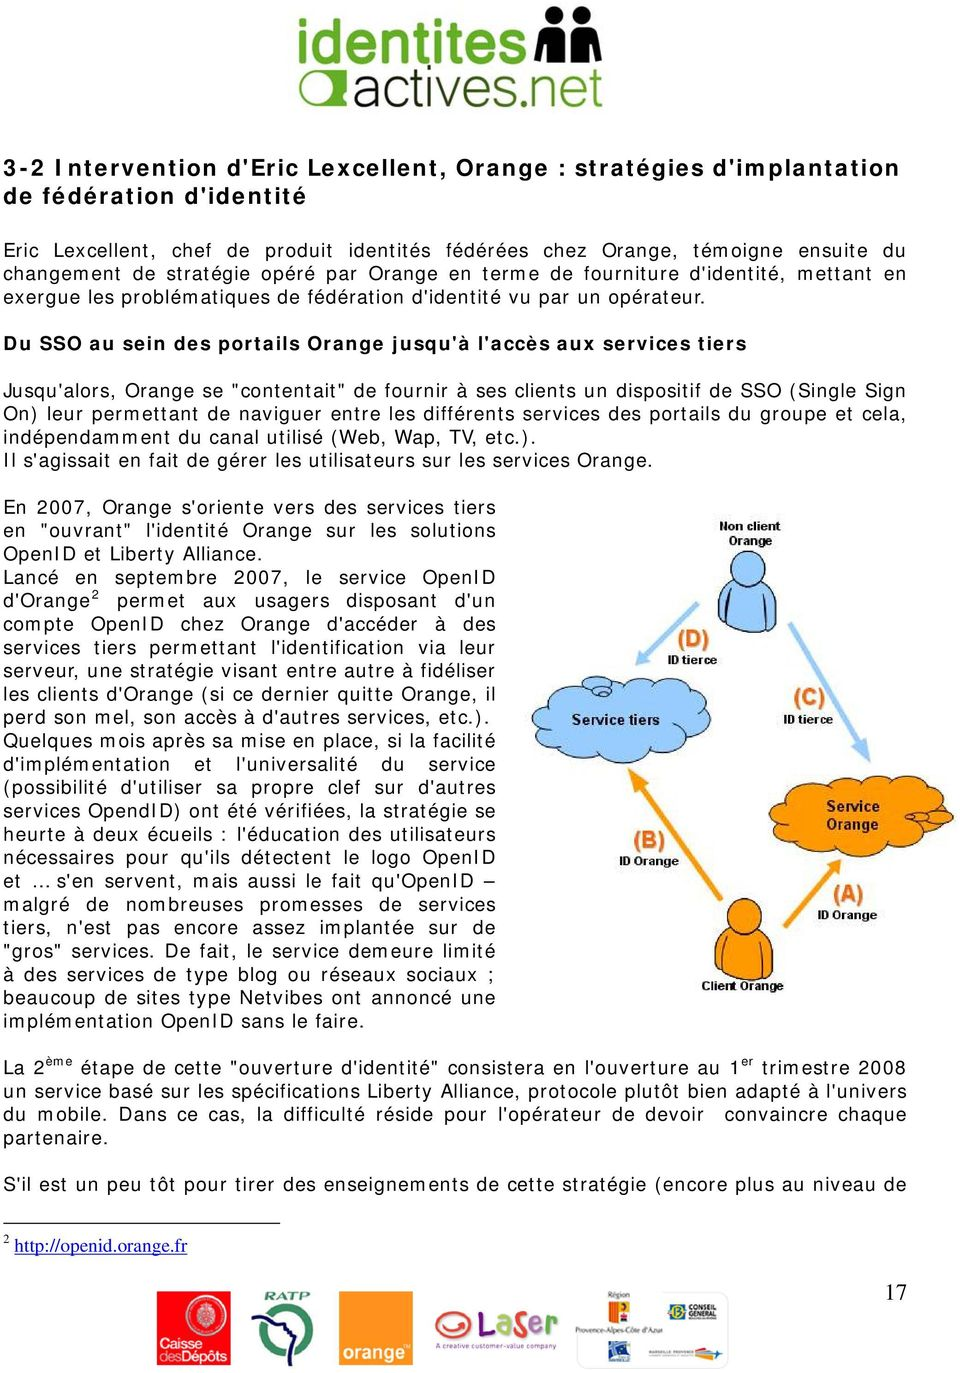 "Du SSO au sein des portails Orange jusqu'à l'accès aux services tiers Jusqu'alors, Orange se ""contentait"" de fournir à ses clients un dispositif de SSO (Single Sign On) leur permettant de naviguer"